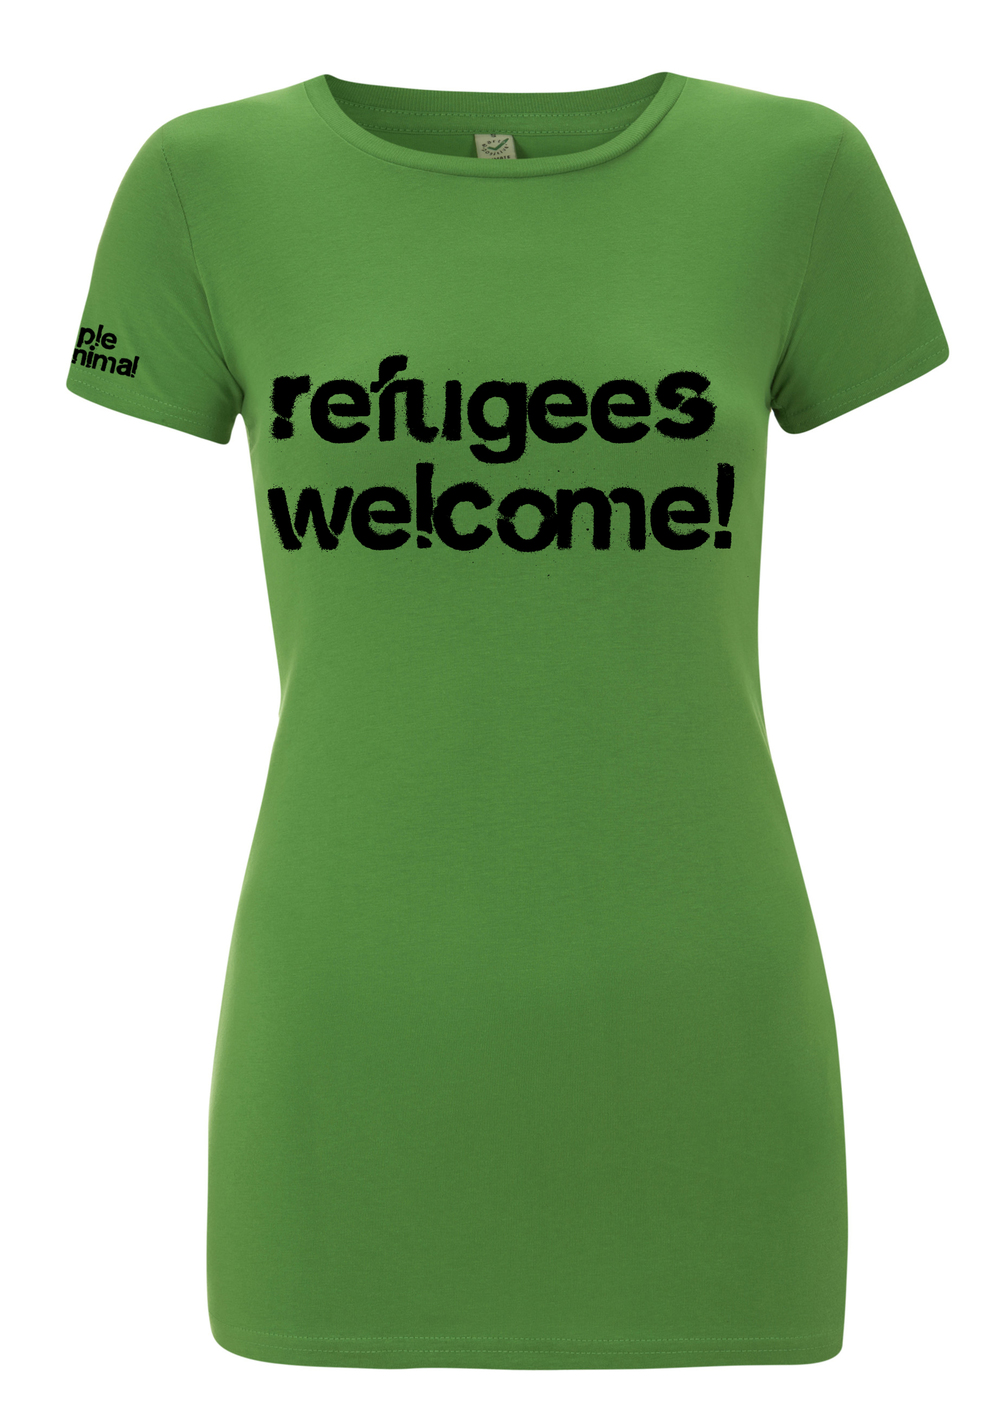 Refugees_Classic Girls Light Green.jpg